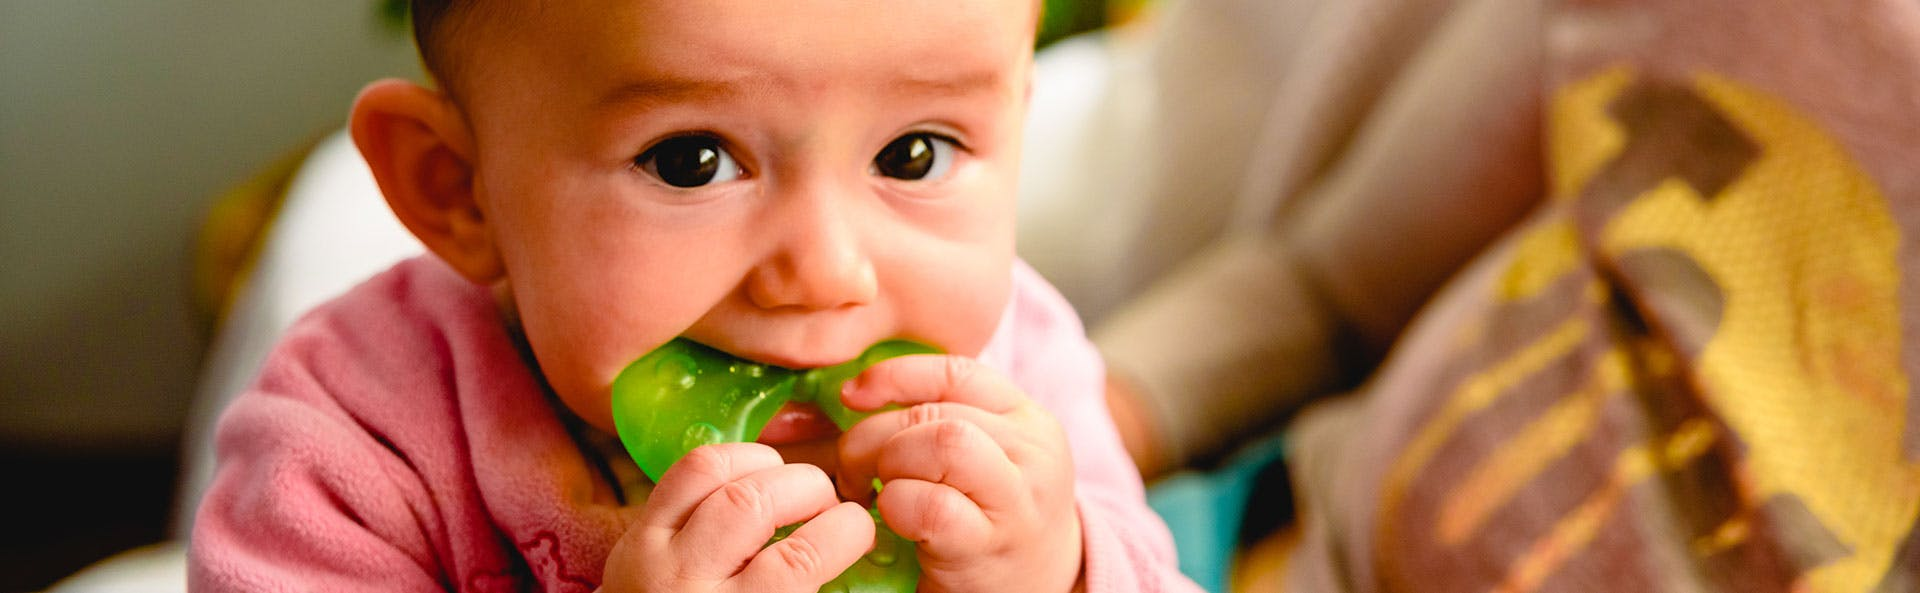 A baby using a teether